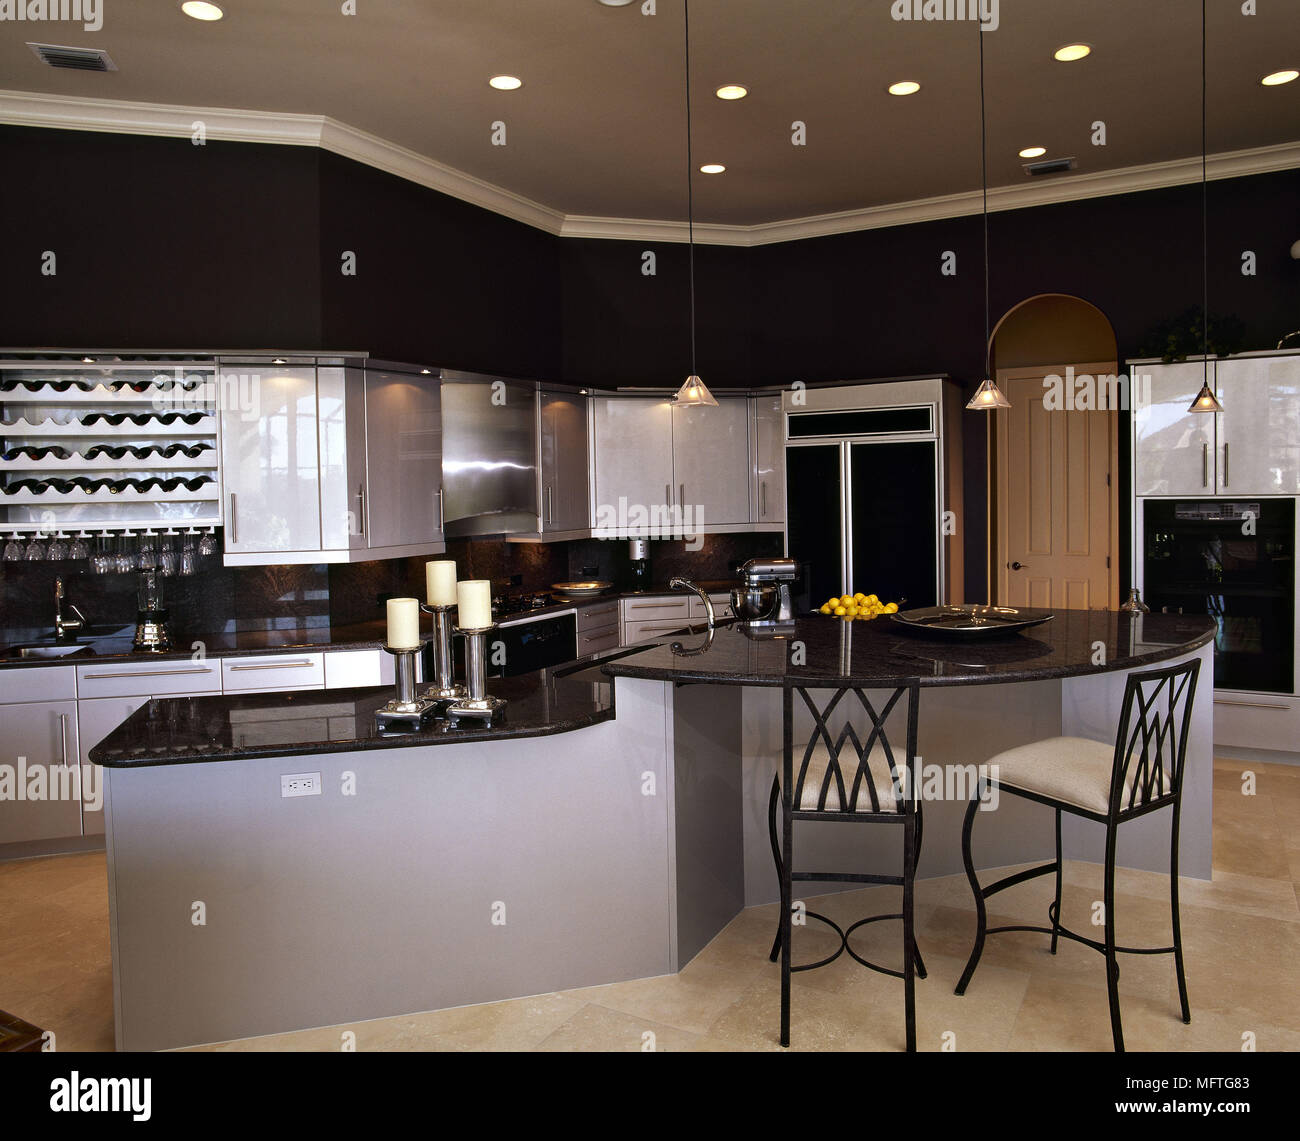 Modern Kitchen Grey Units Black Granite Worktops Central Island Breakfast Bar Stools Interiors Kitchens Kitchen Diner Diners Stock Photo Alamy